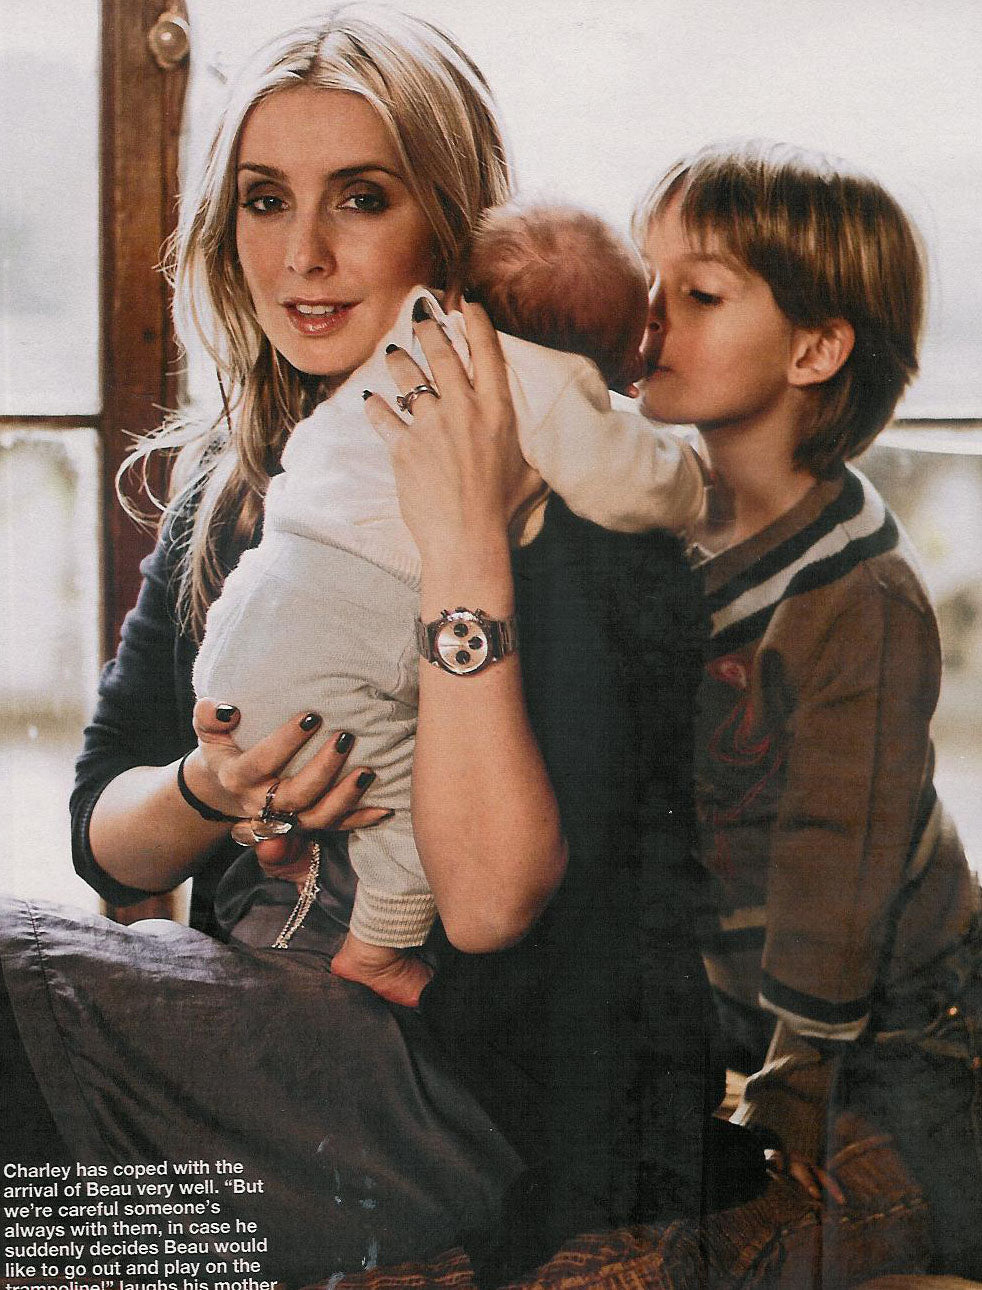 Louise Redknapp and new born baby wearing Bonnie baby, with son Charley